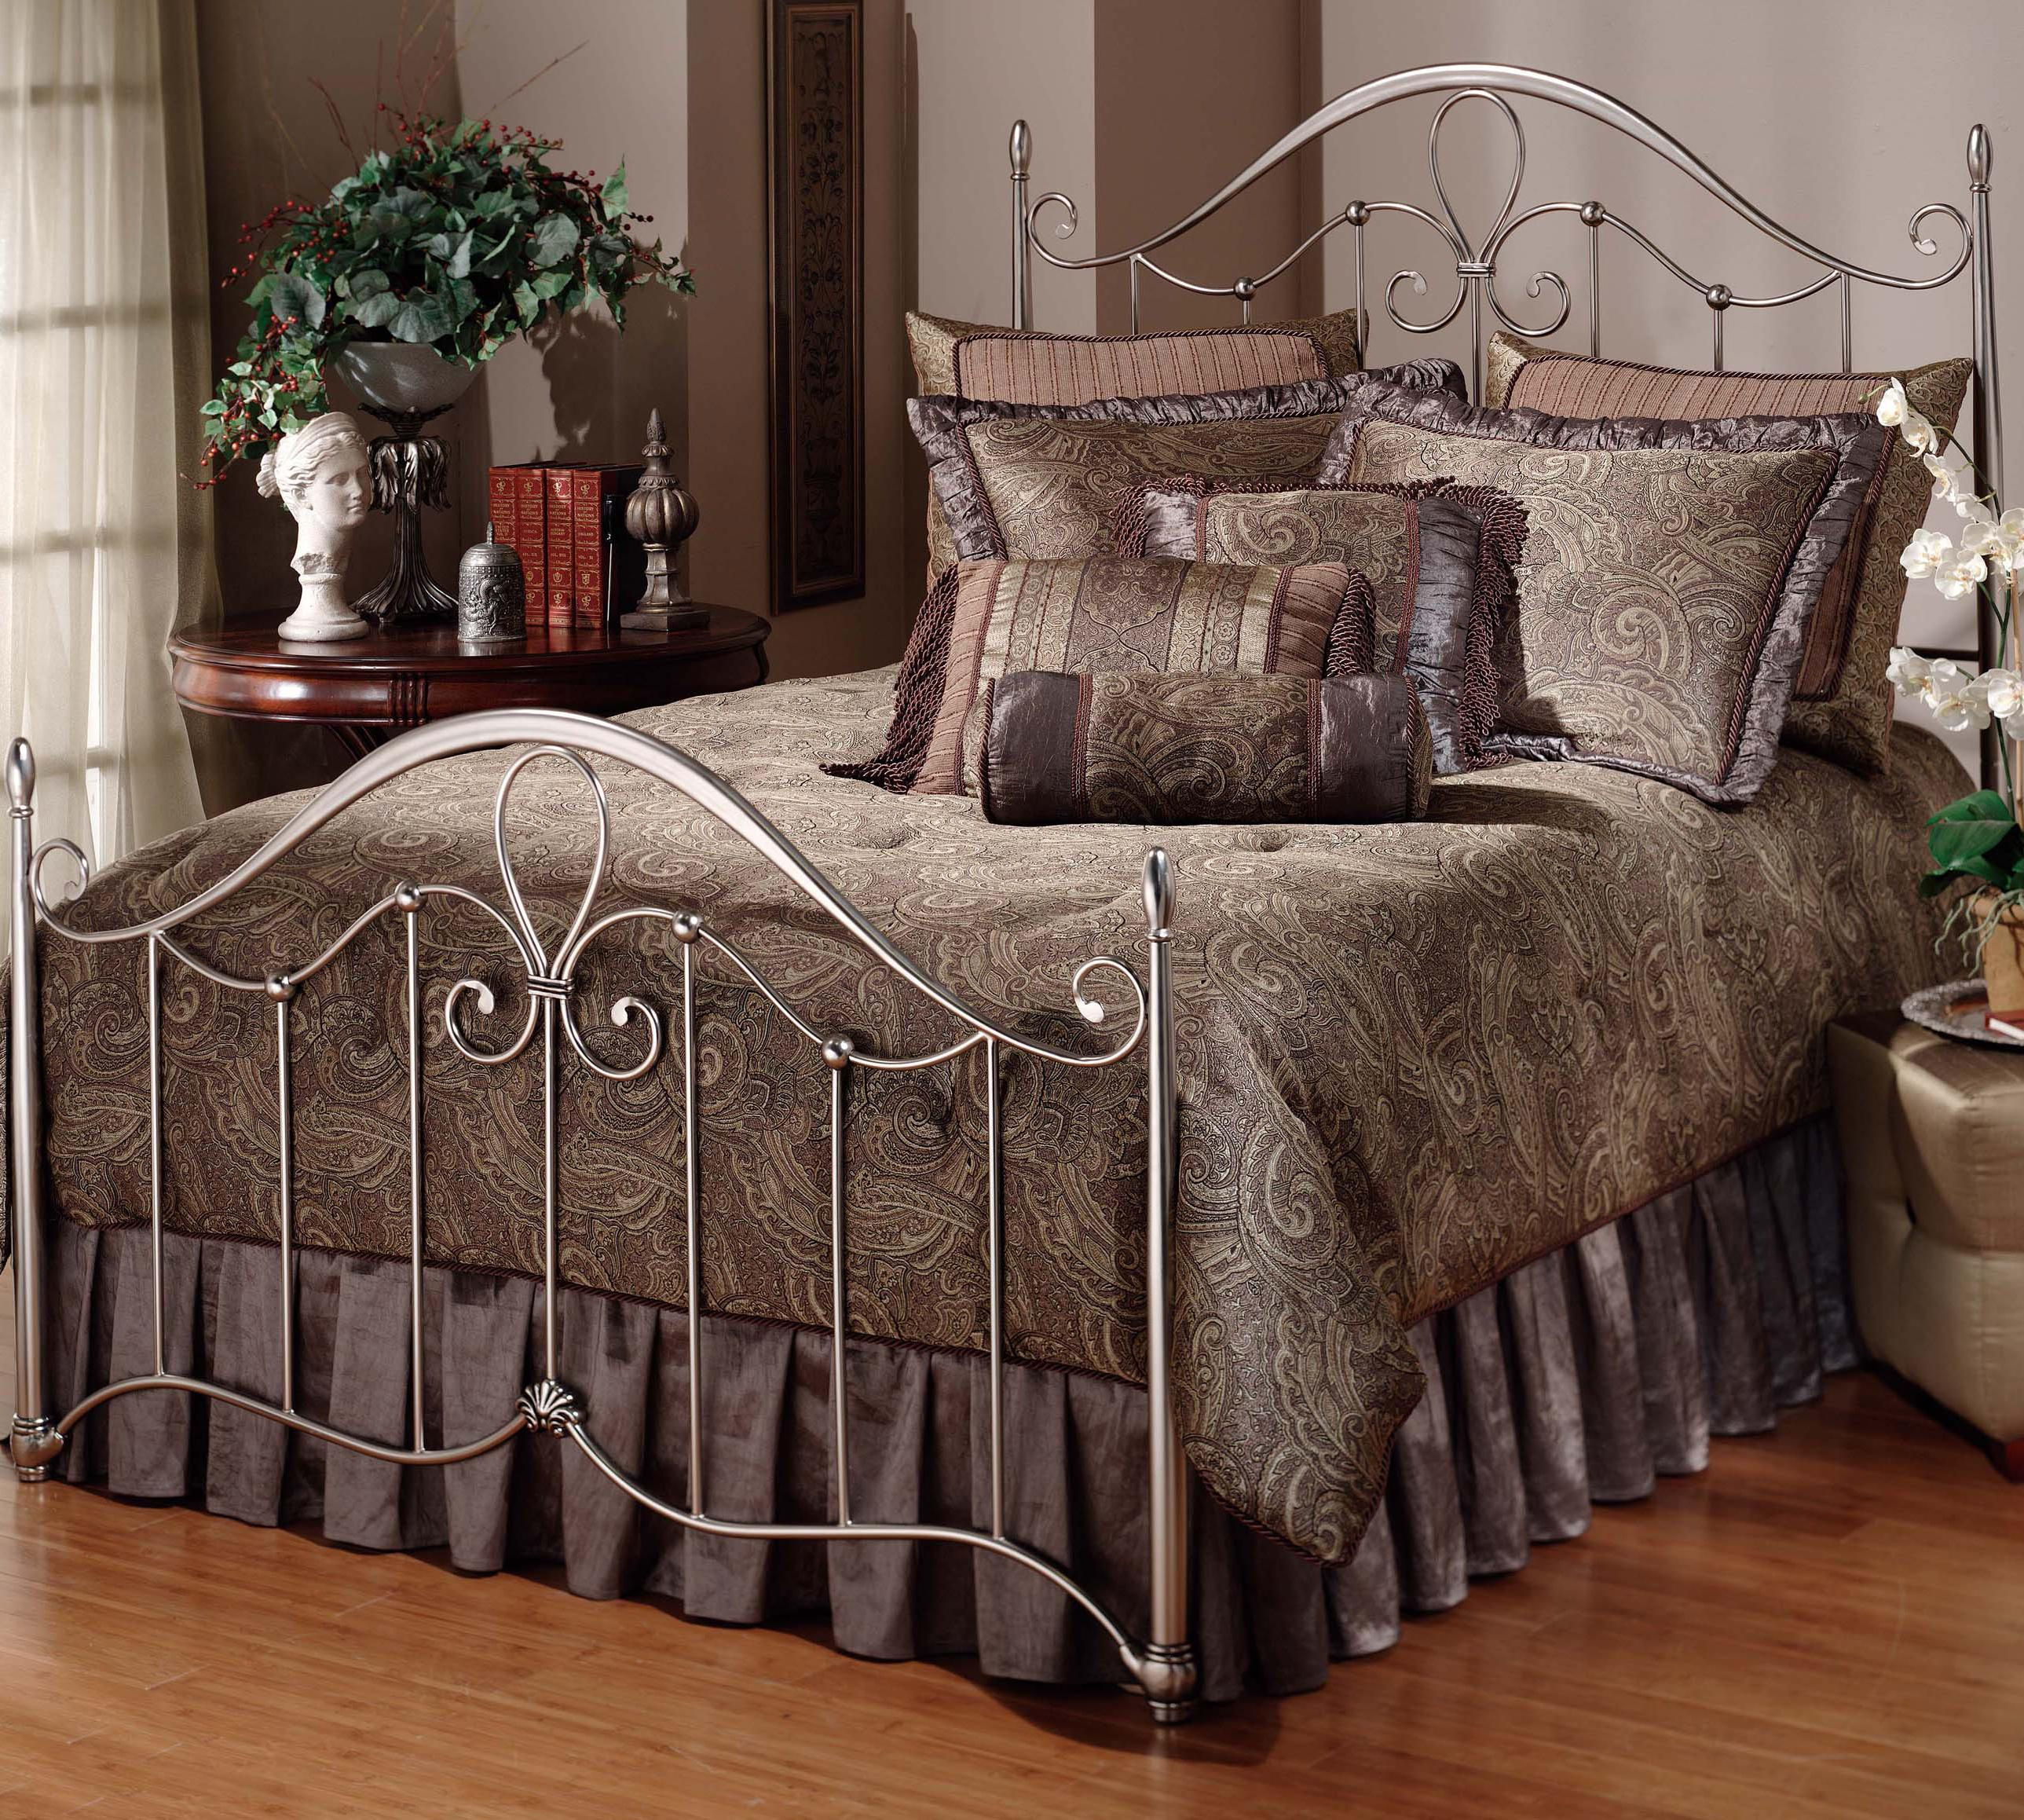 Hillsdale Metal Beds Full Doheny Bed - Item Number: 1383BFR